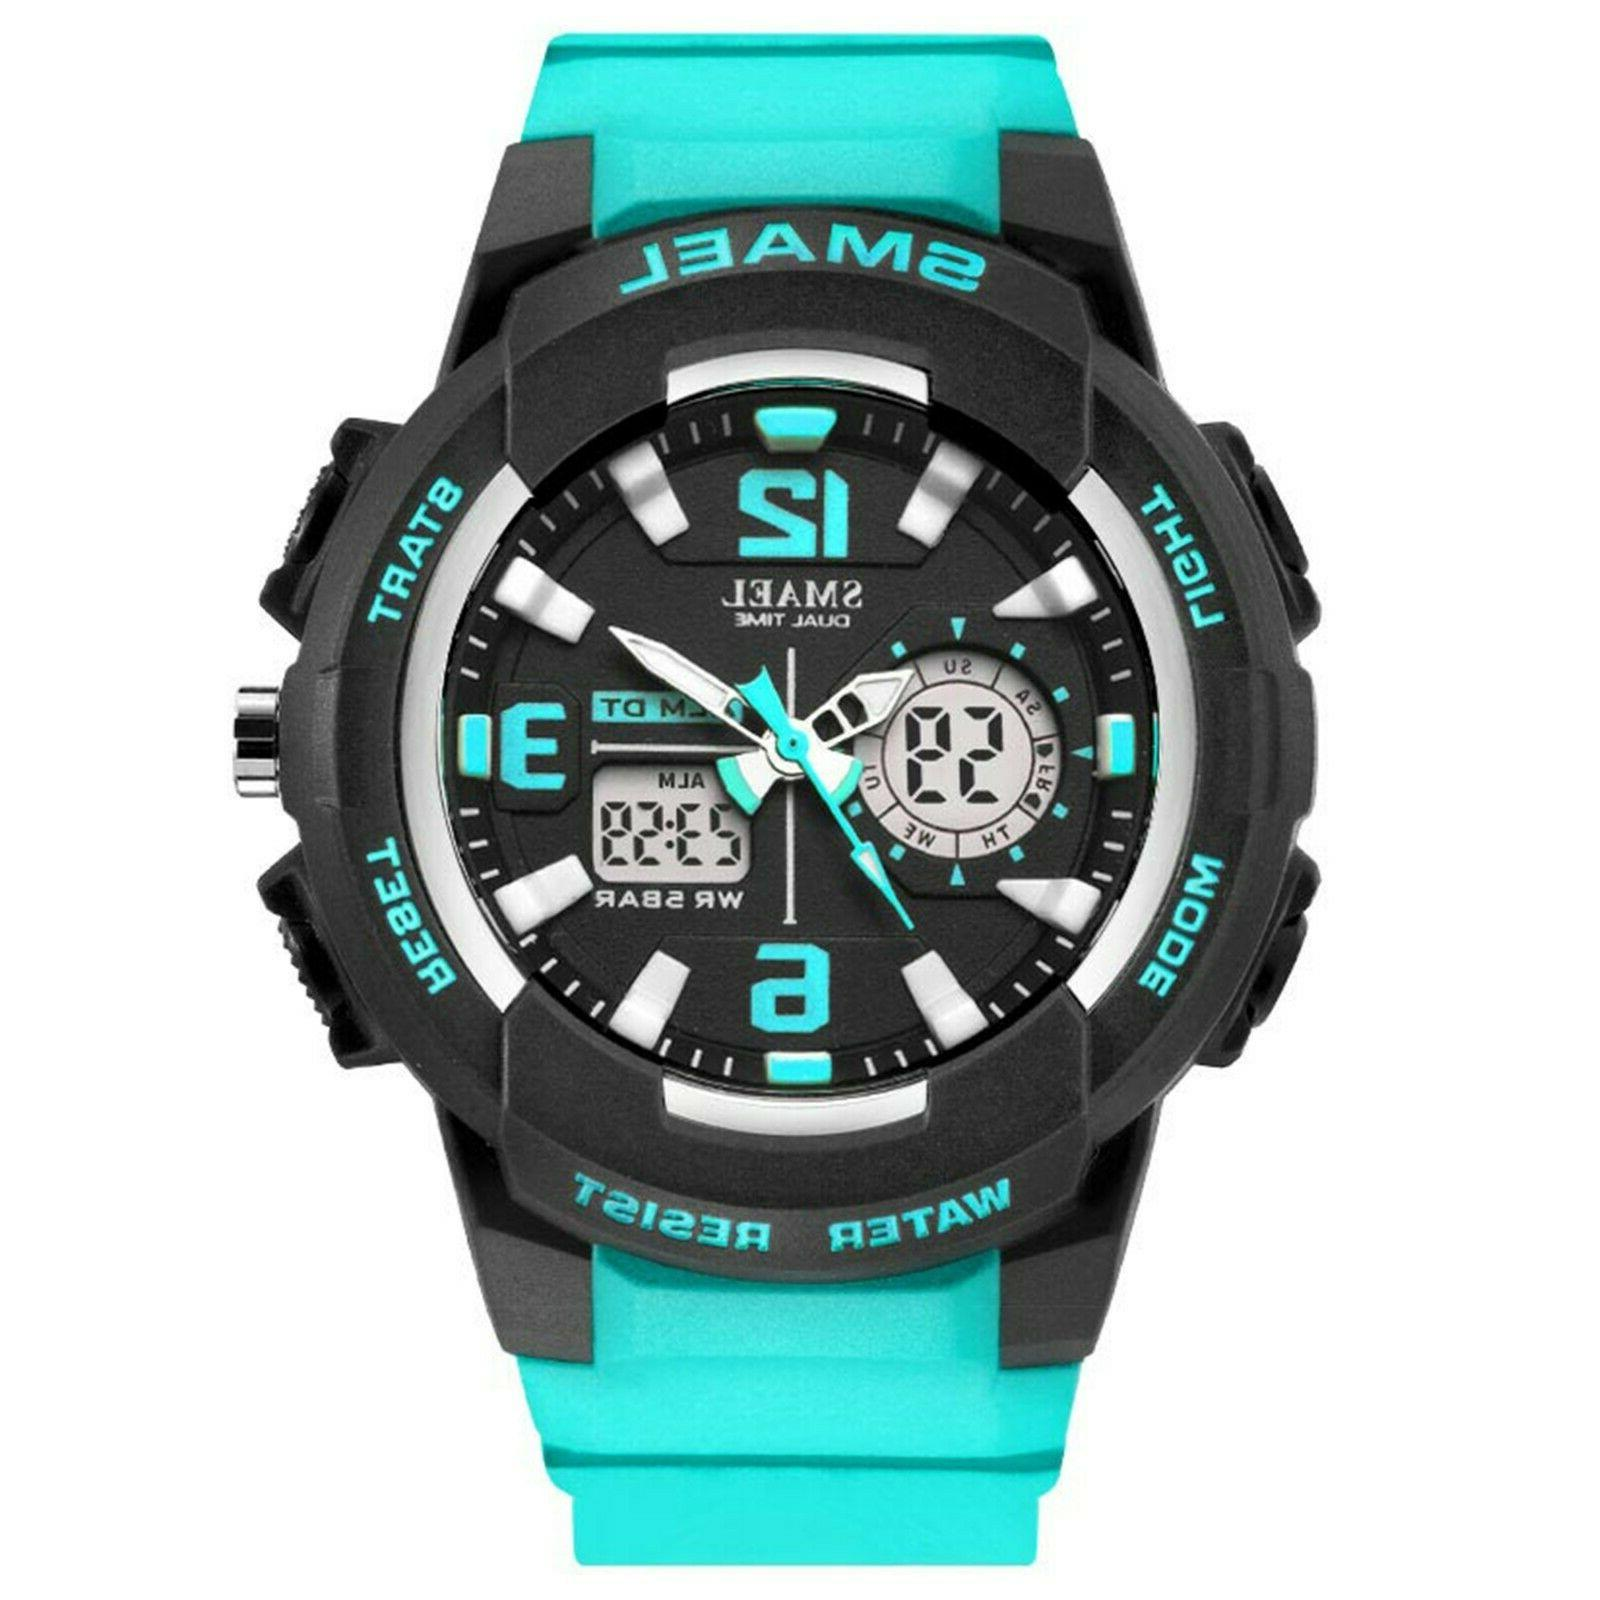 unisex electronic waterproof sports watch with analog